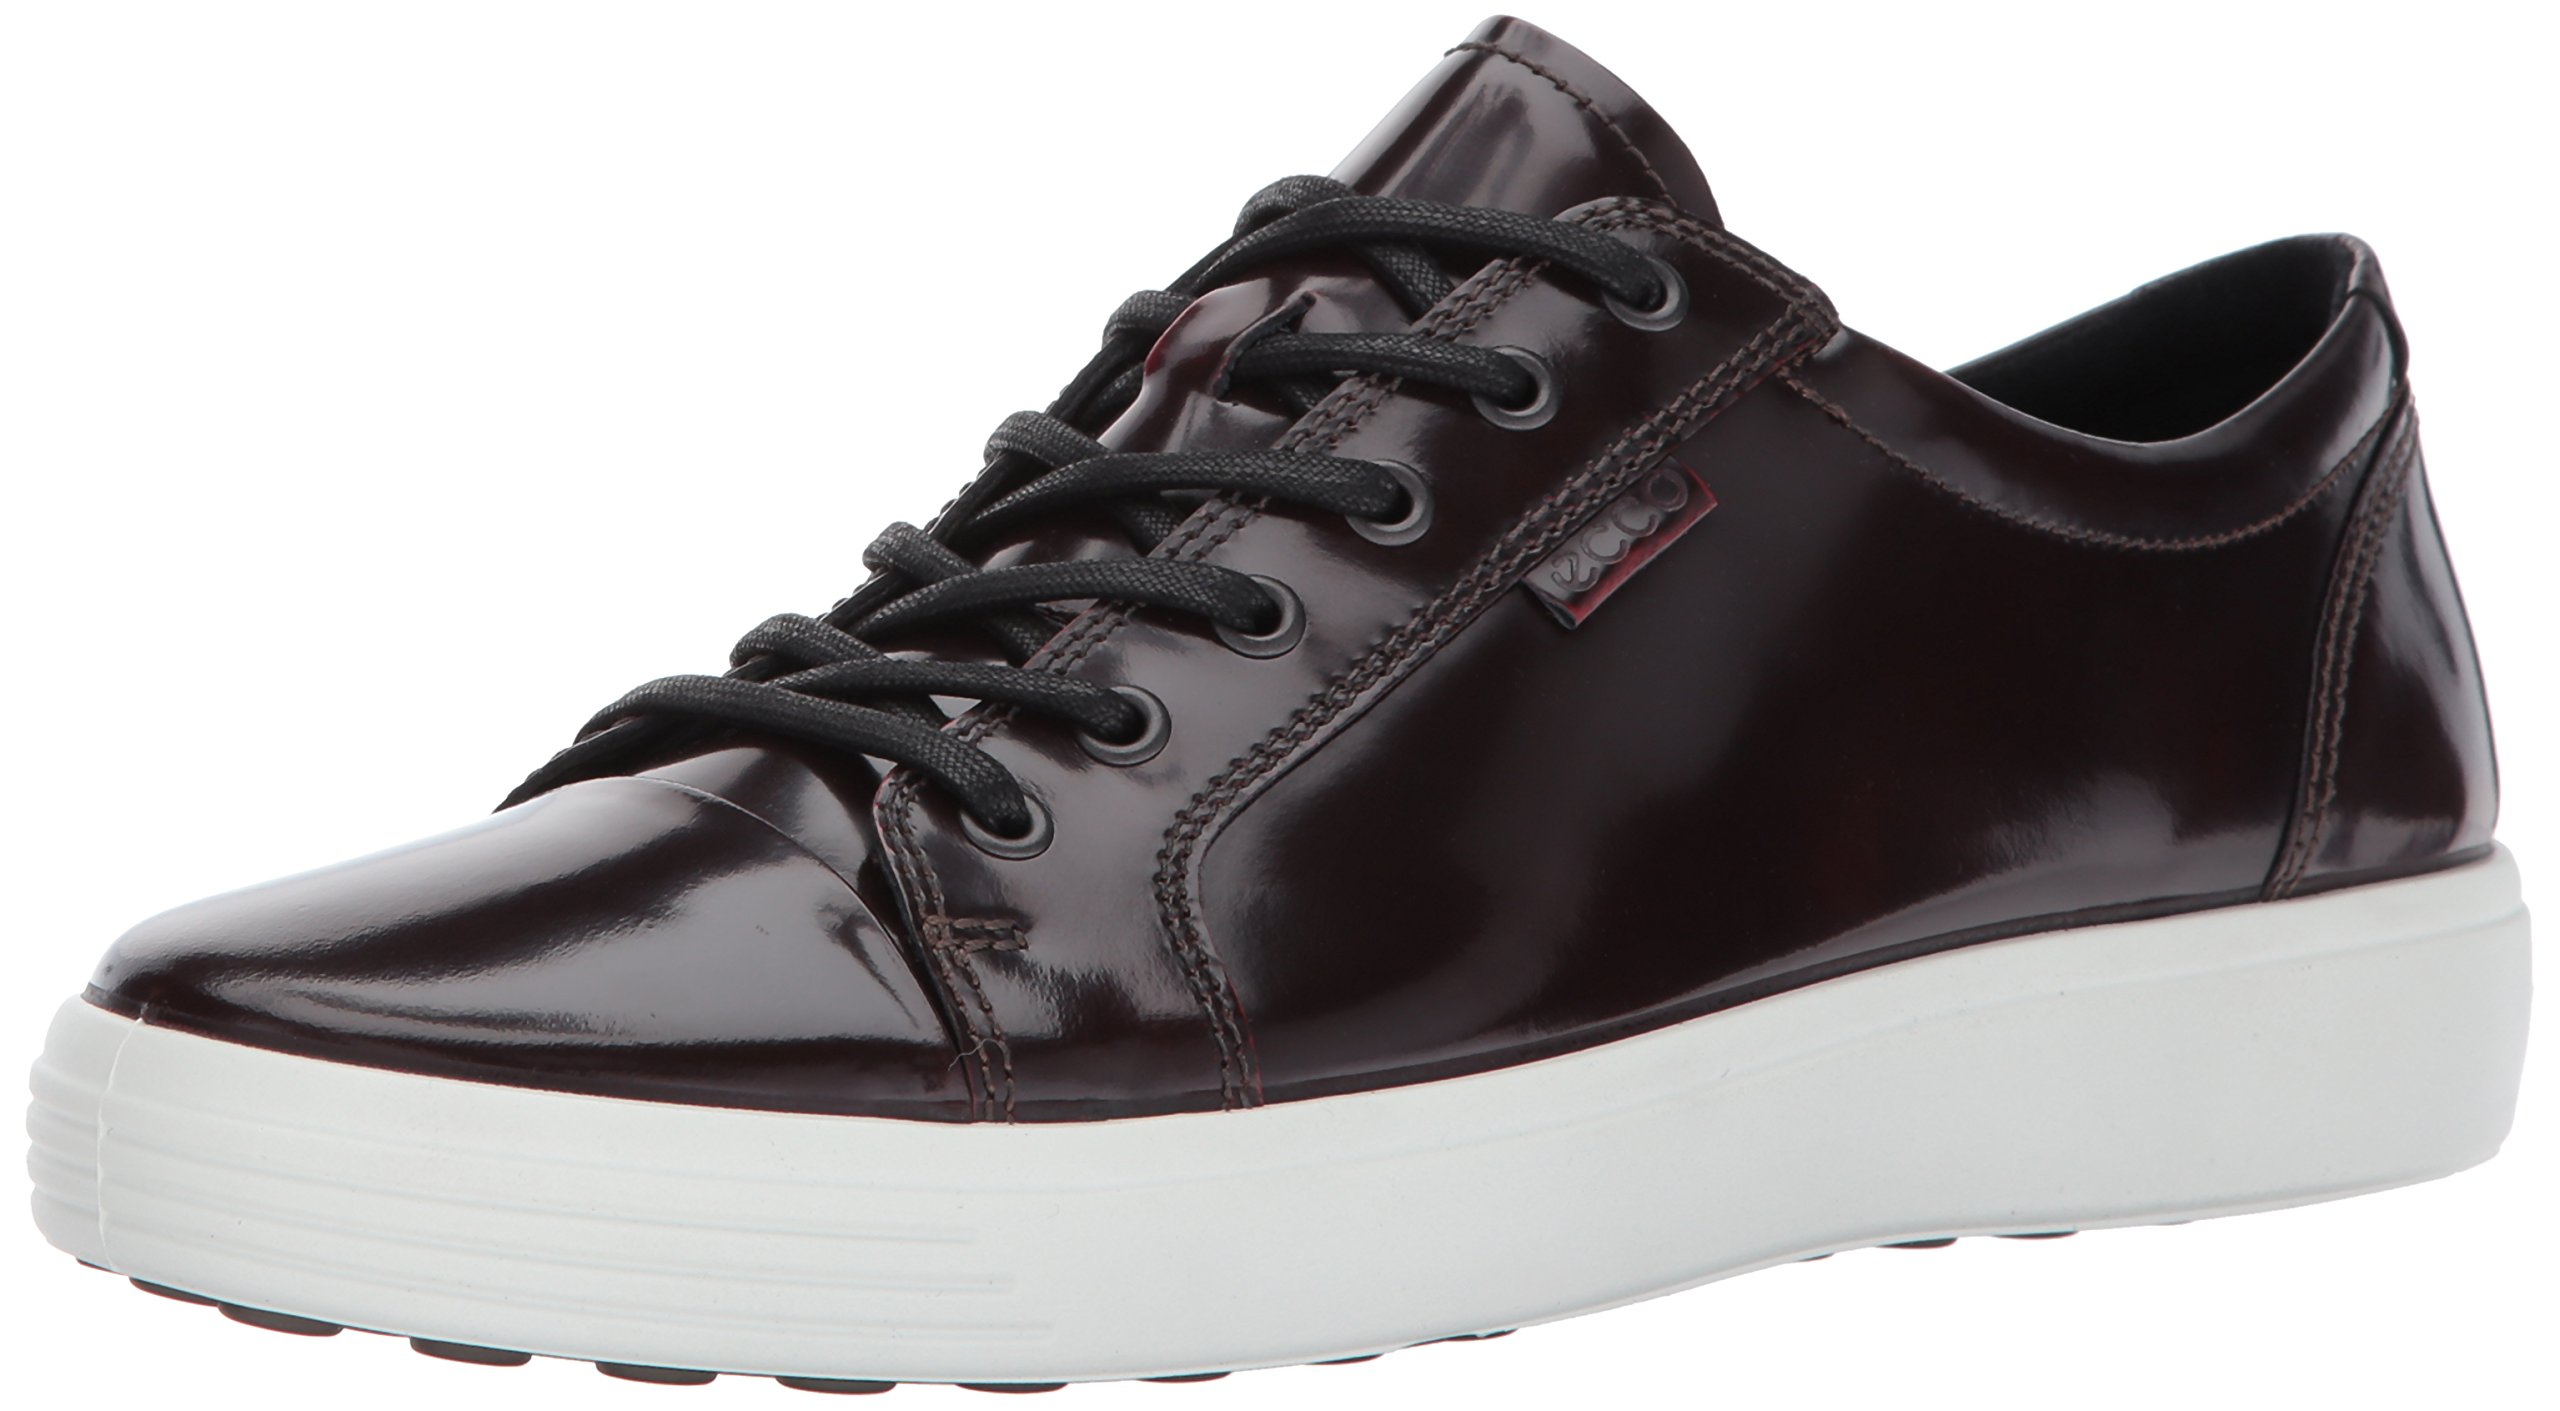 ECCO Men's Soft 7 Premium Tie Fashion Sneaker, Bordeaux Patent, 44 M EU/10-10.5 D(M) US